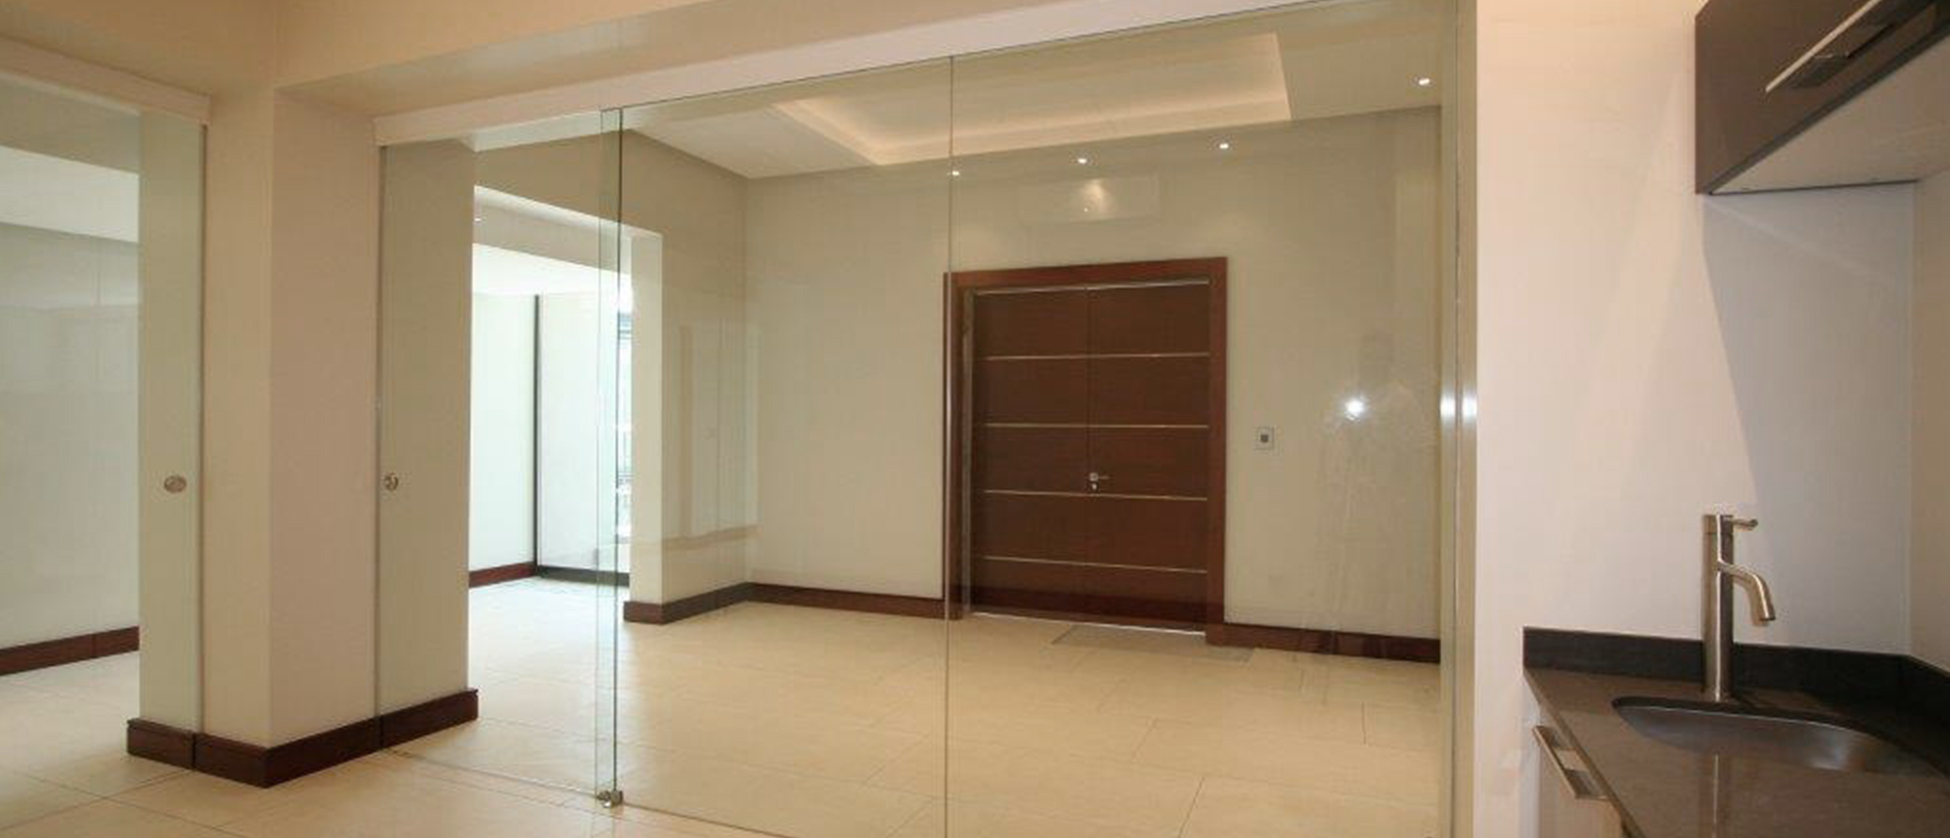 Regal Glide Glass Doors